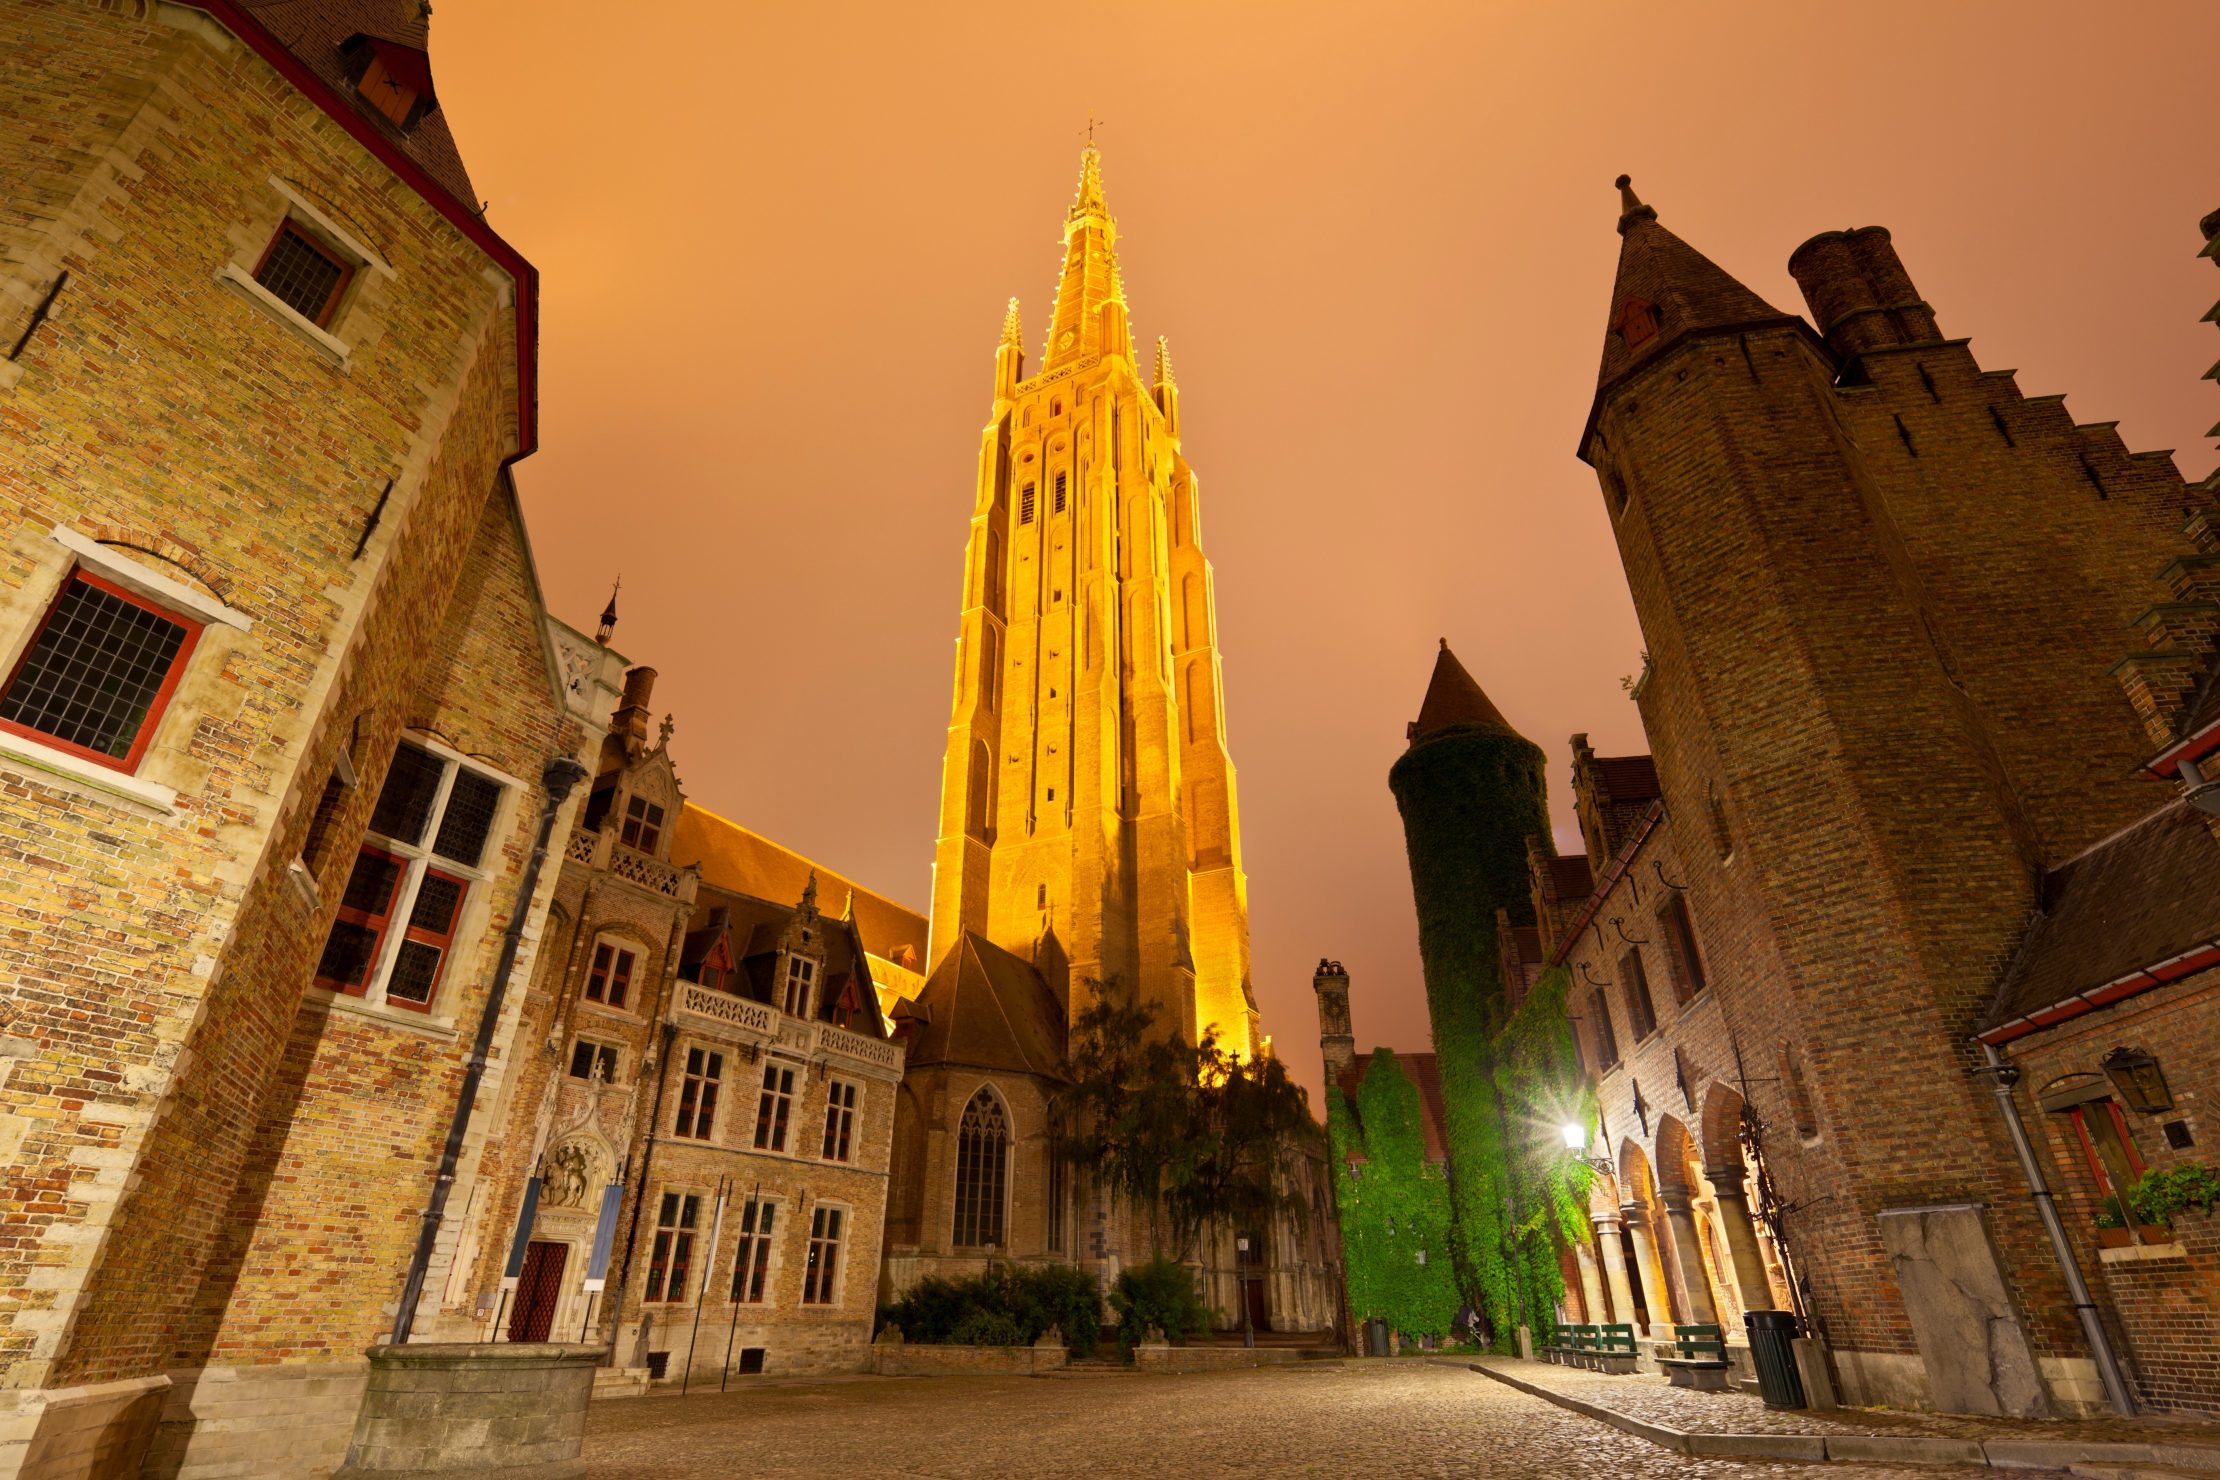 The Top Attractions of Bruges - Brugge